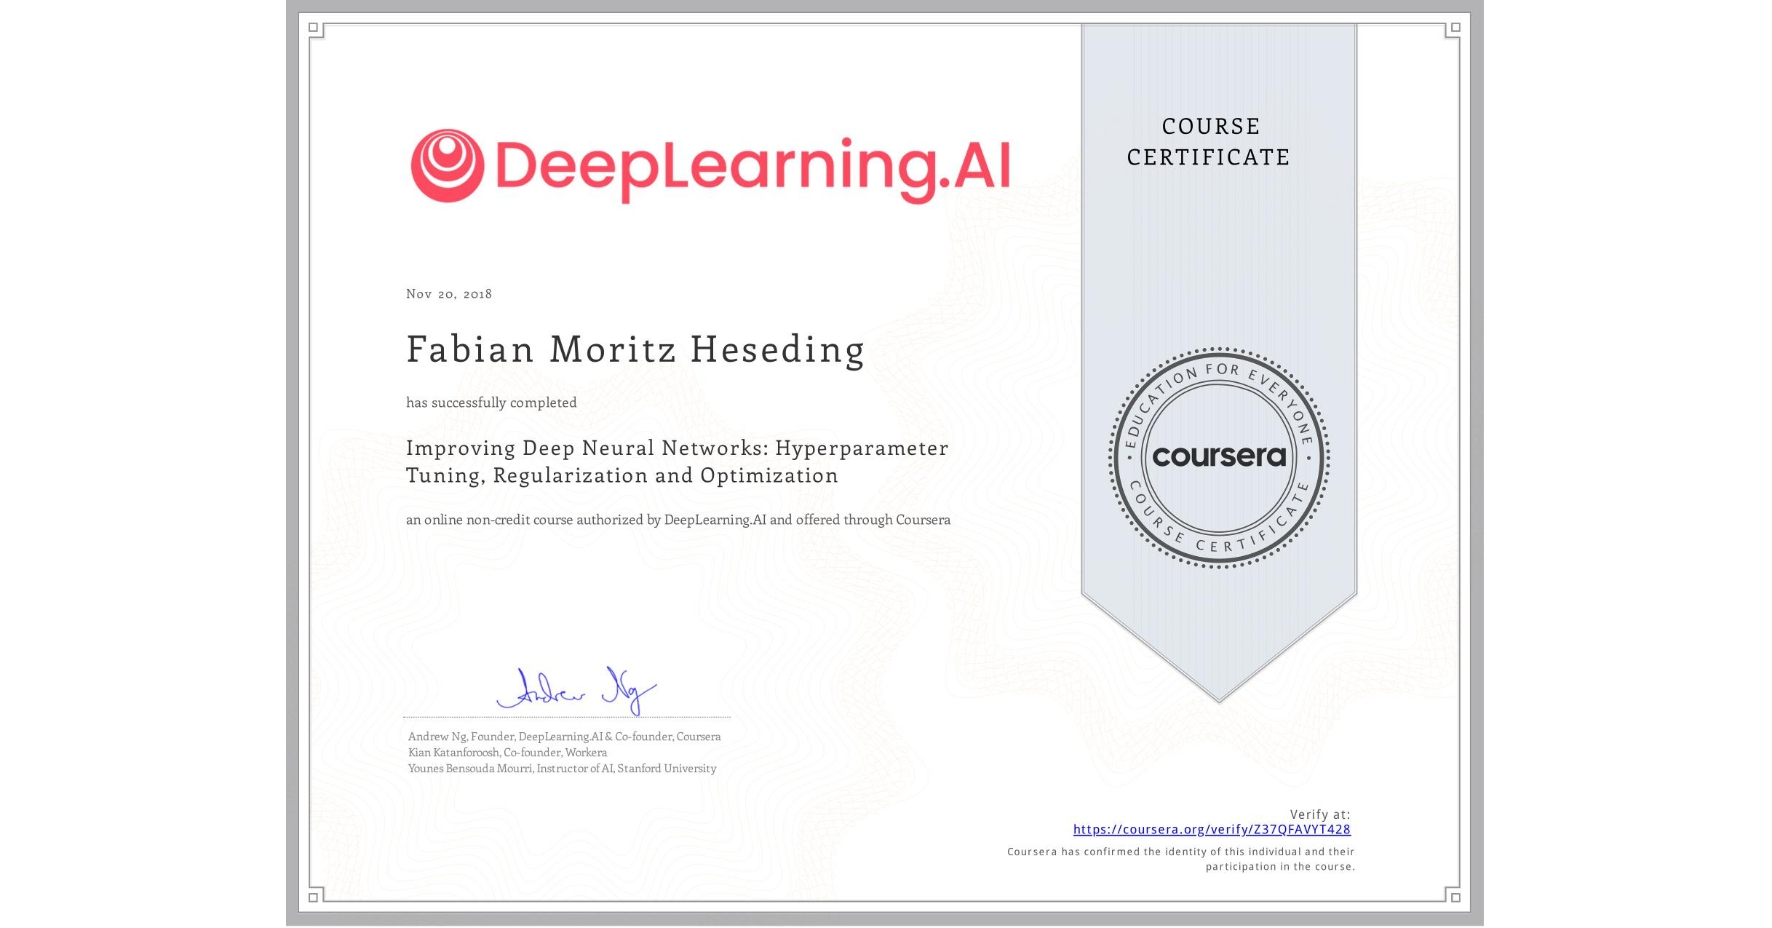 View certificate for Fabian Moritz Heseding, Improving Deep Neural Networks: Hyperparameter tuning, Regularization and Optimization, an online non-credit course authorized by DeepLearning.AI and offered through Coursera